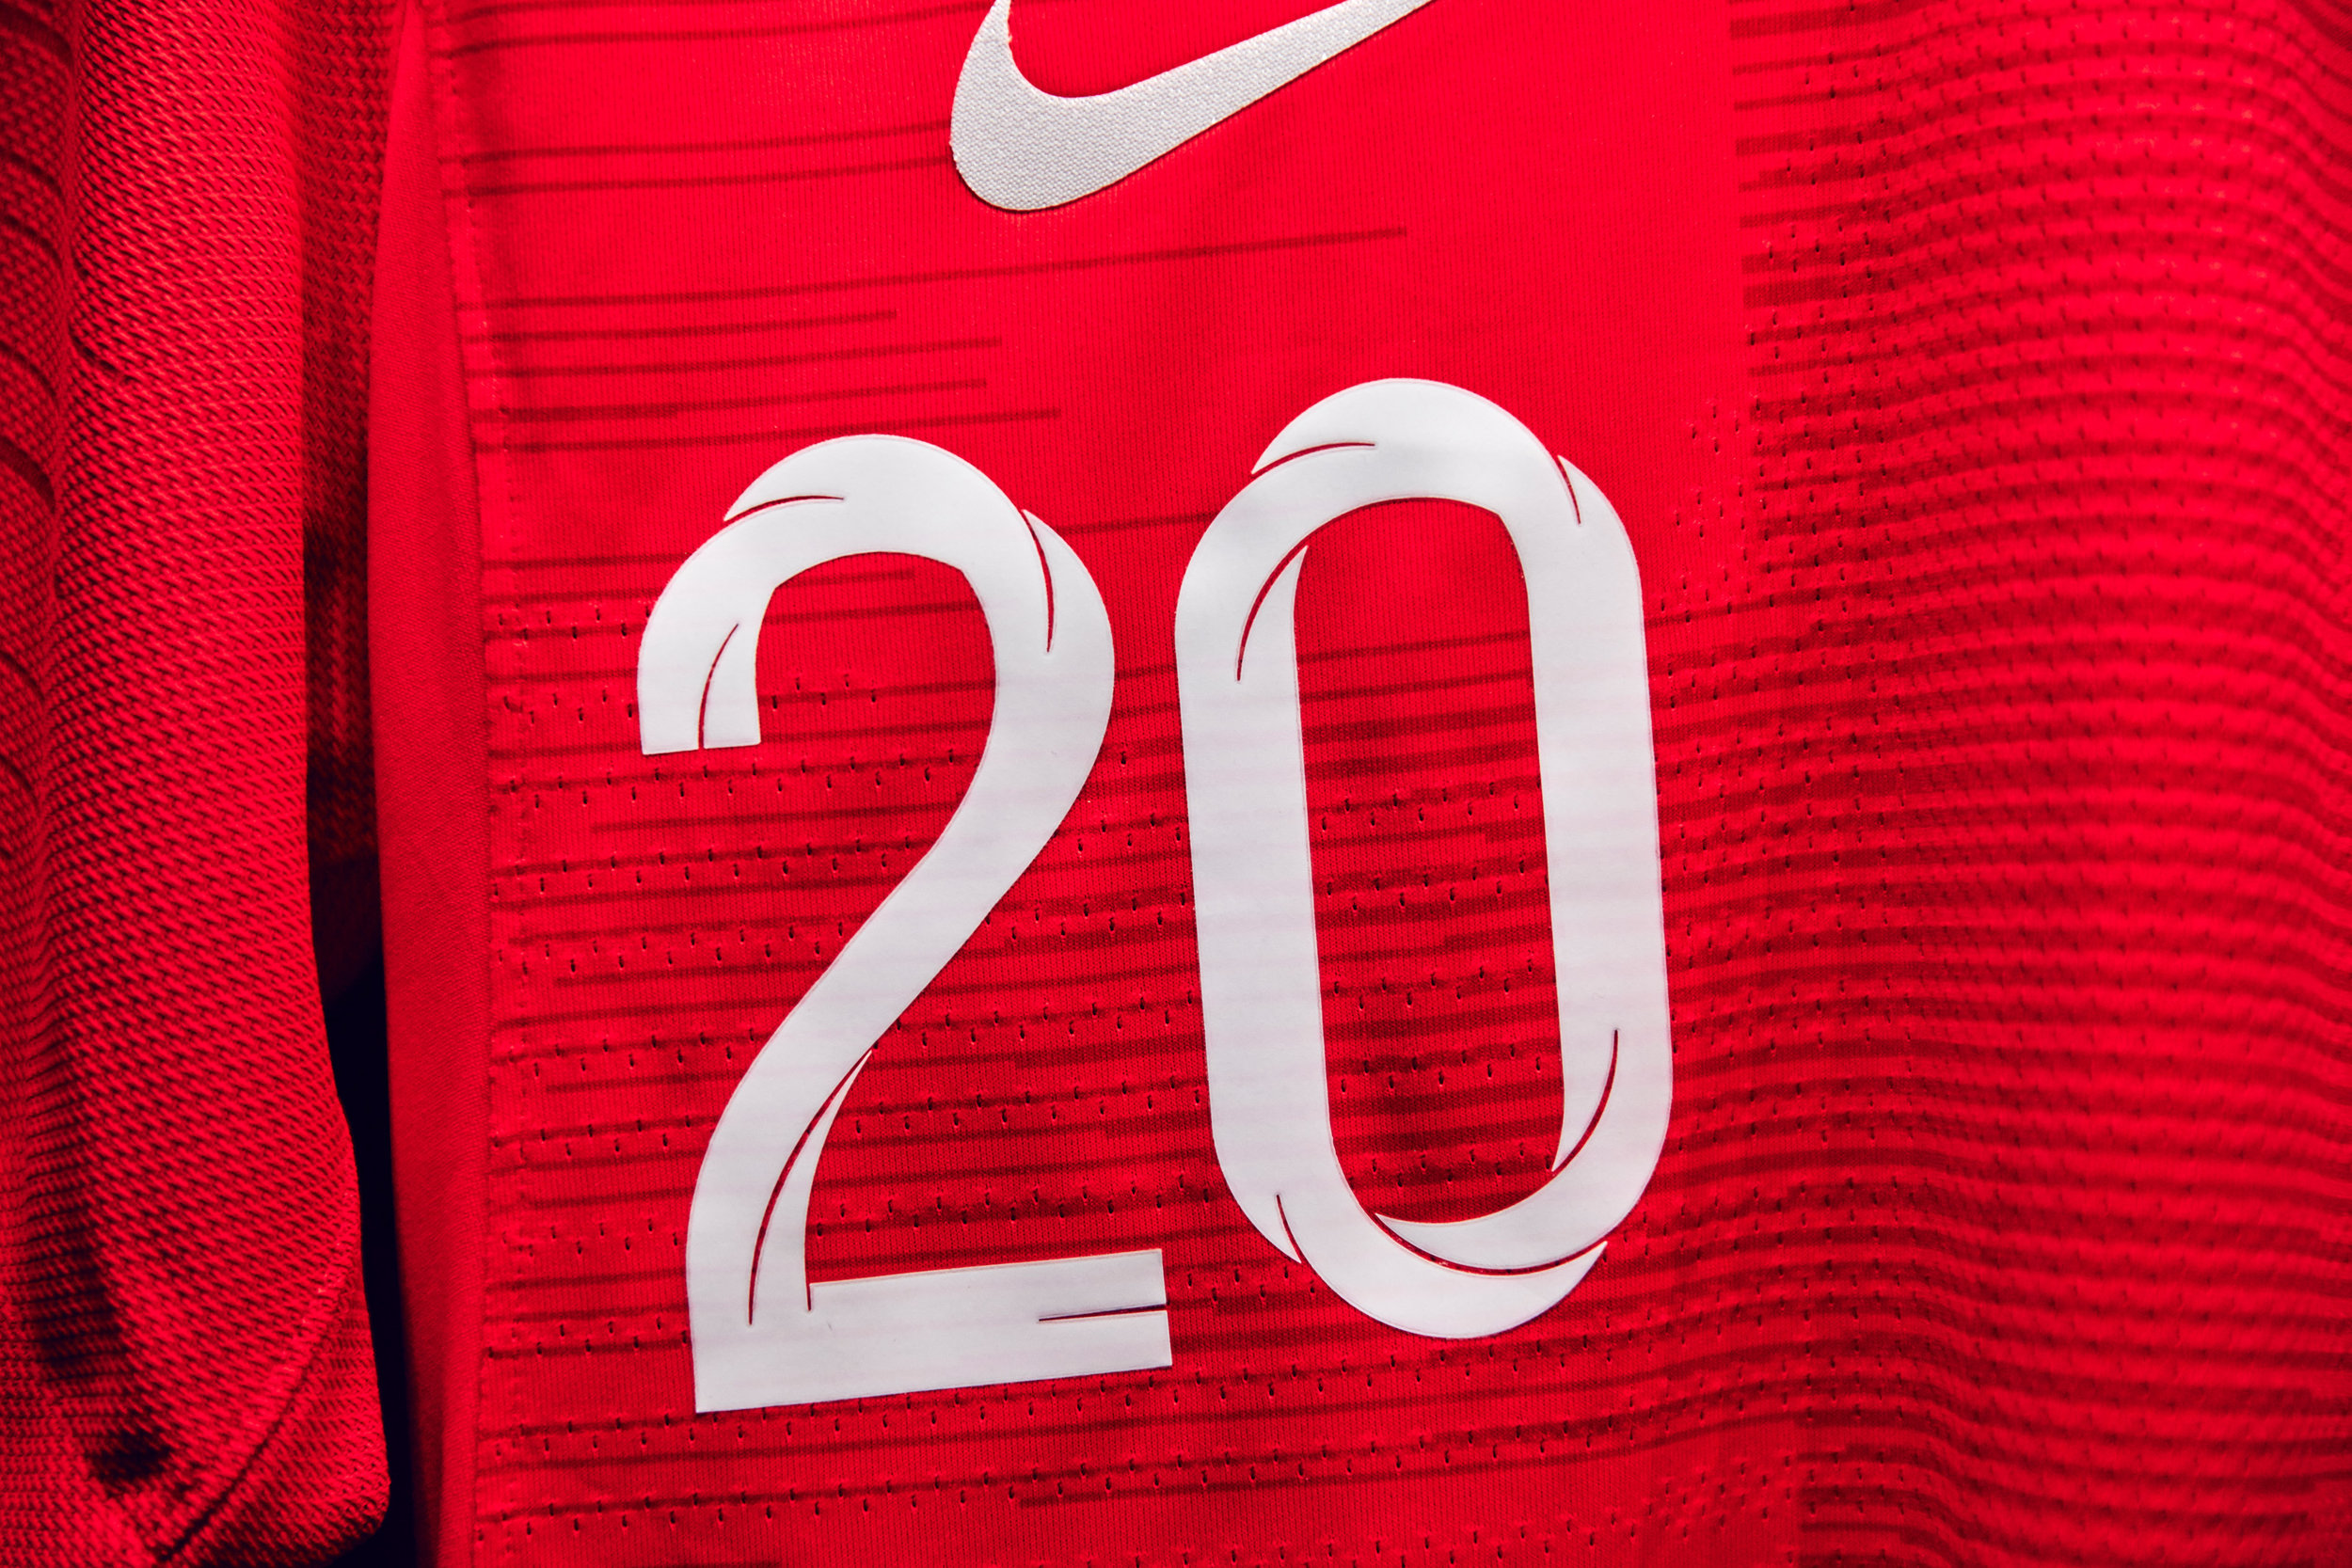 Nike-News-Football-Soccer-England-National-Team-Kit-3_77389.JPG